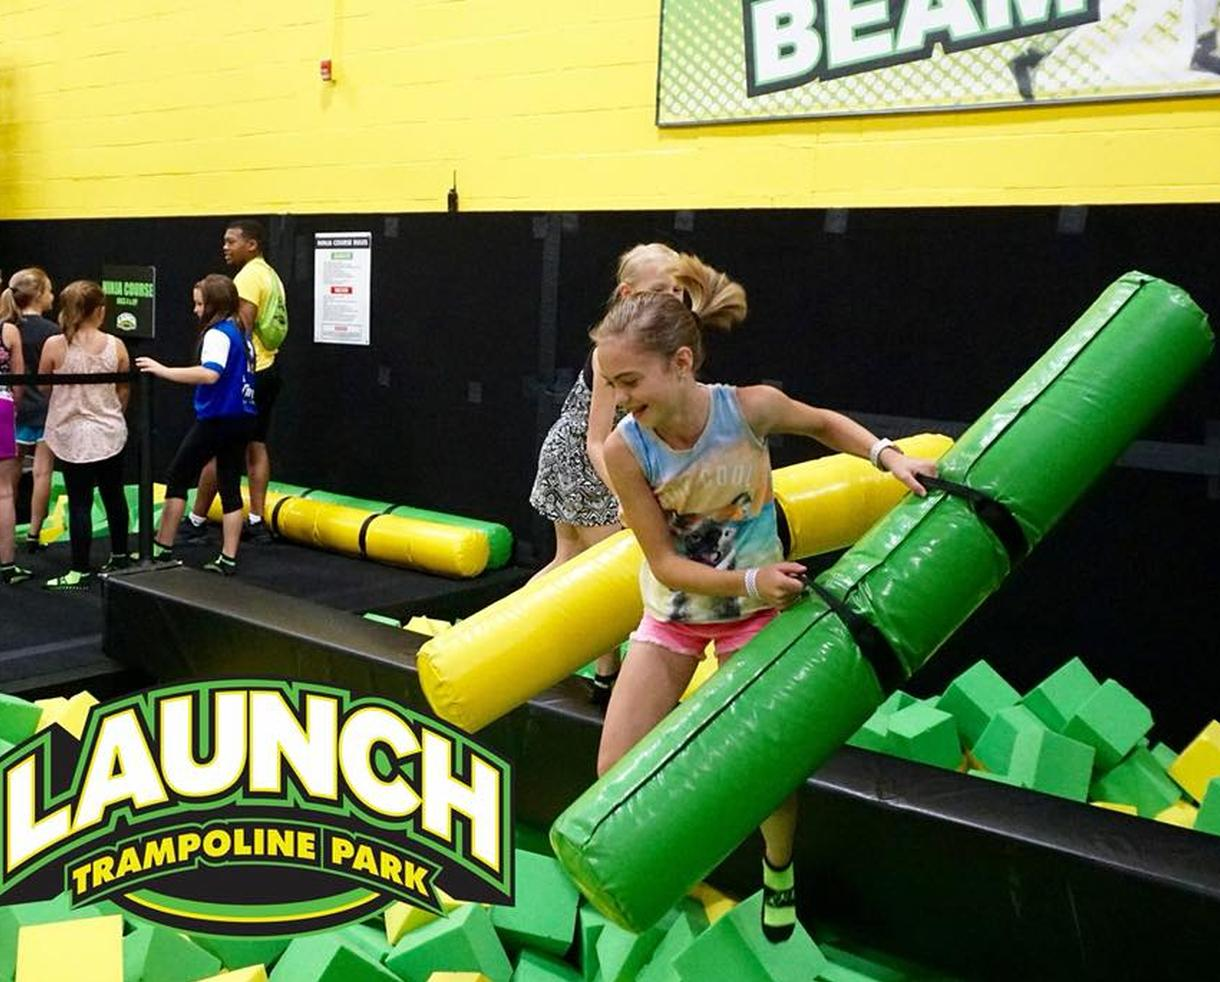 One 60-Minute Open Jump Pass at Launch Trampoline Park Herndon